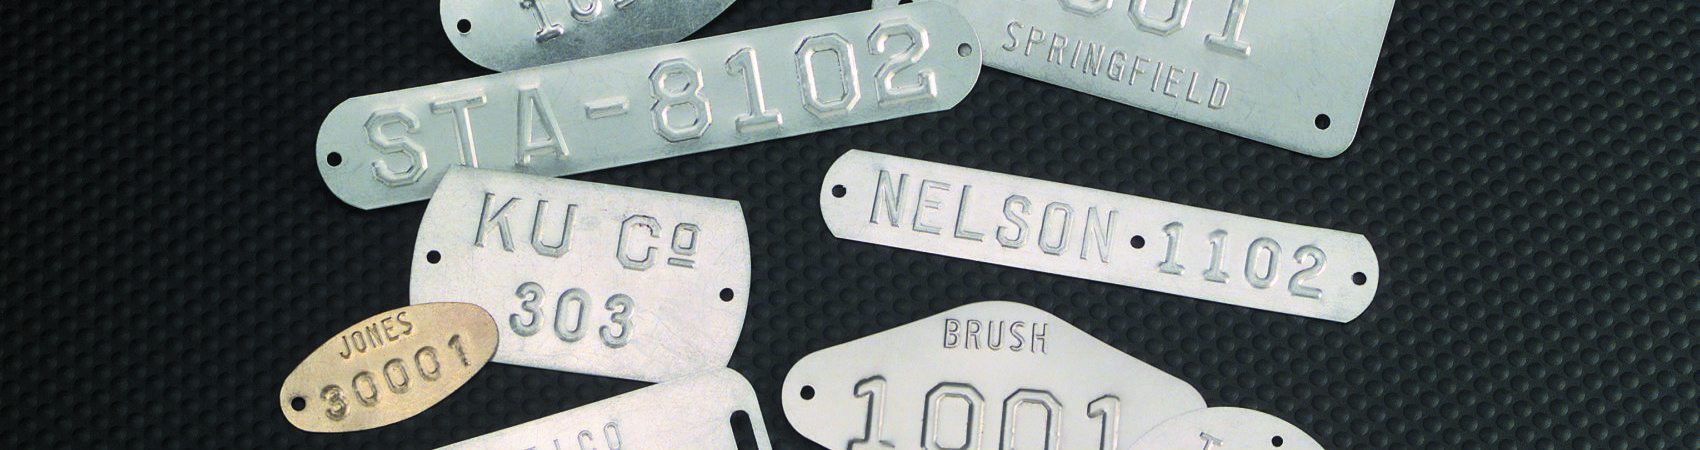 Metal Embossed Tags